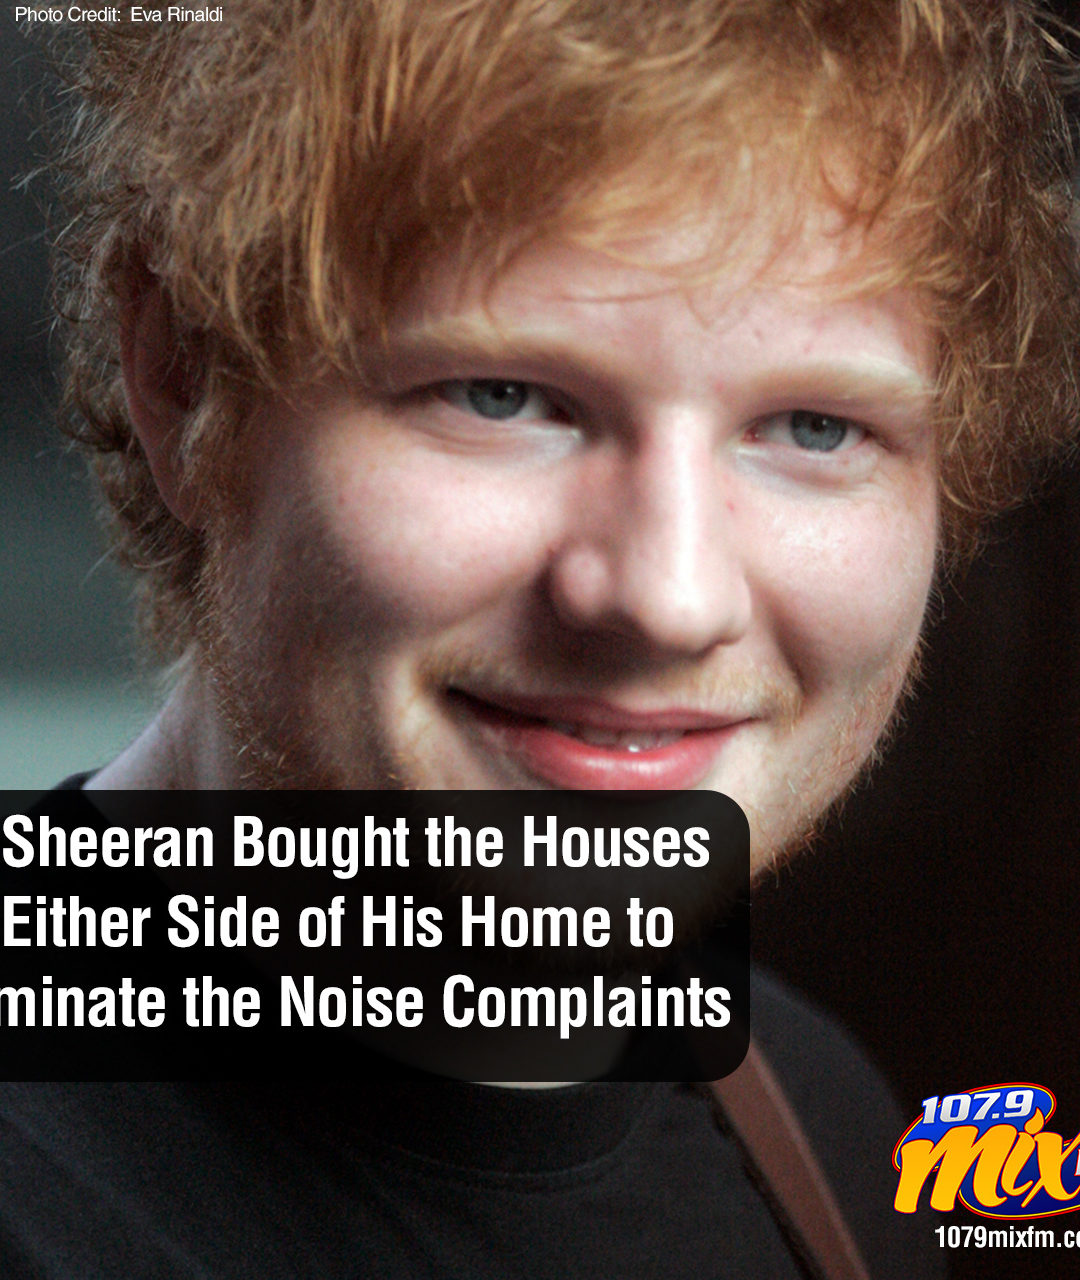 Ed Sheeran Bought the Houses on Either Side of His Home to Eliminate the Noise Complaints